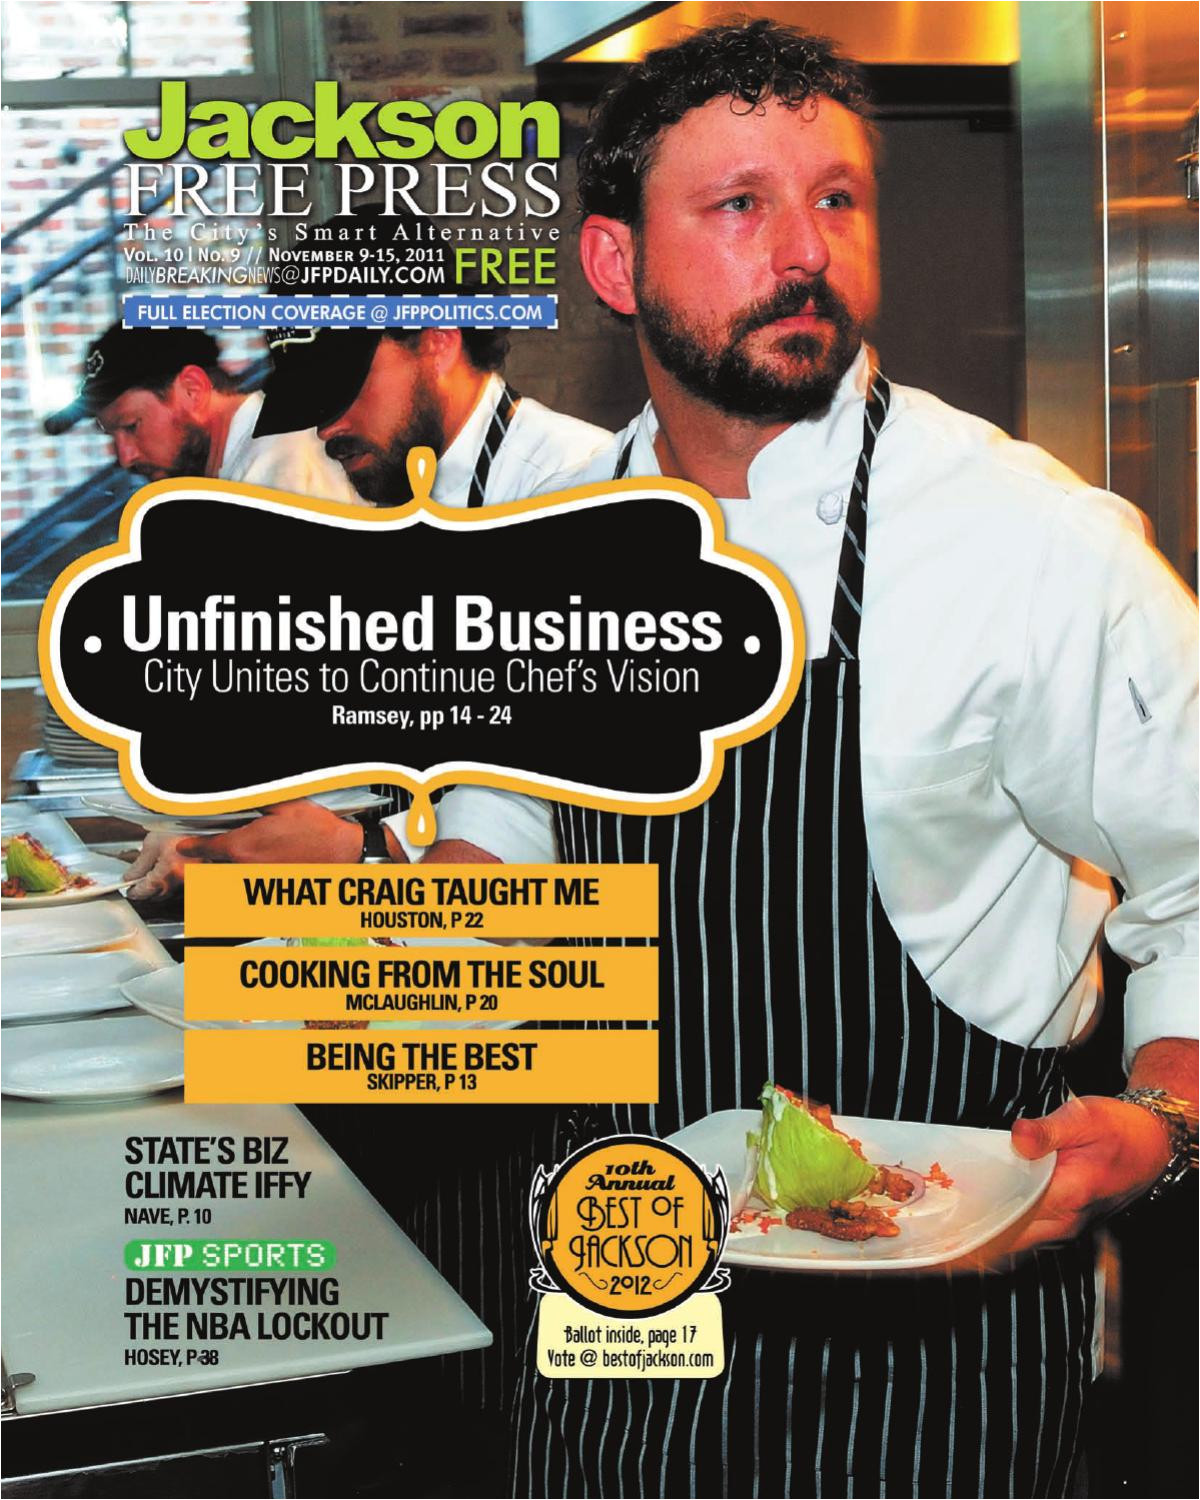 v10n09 unfinished business city unites to continue chef s vision by jackson free press issuu